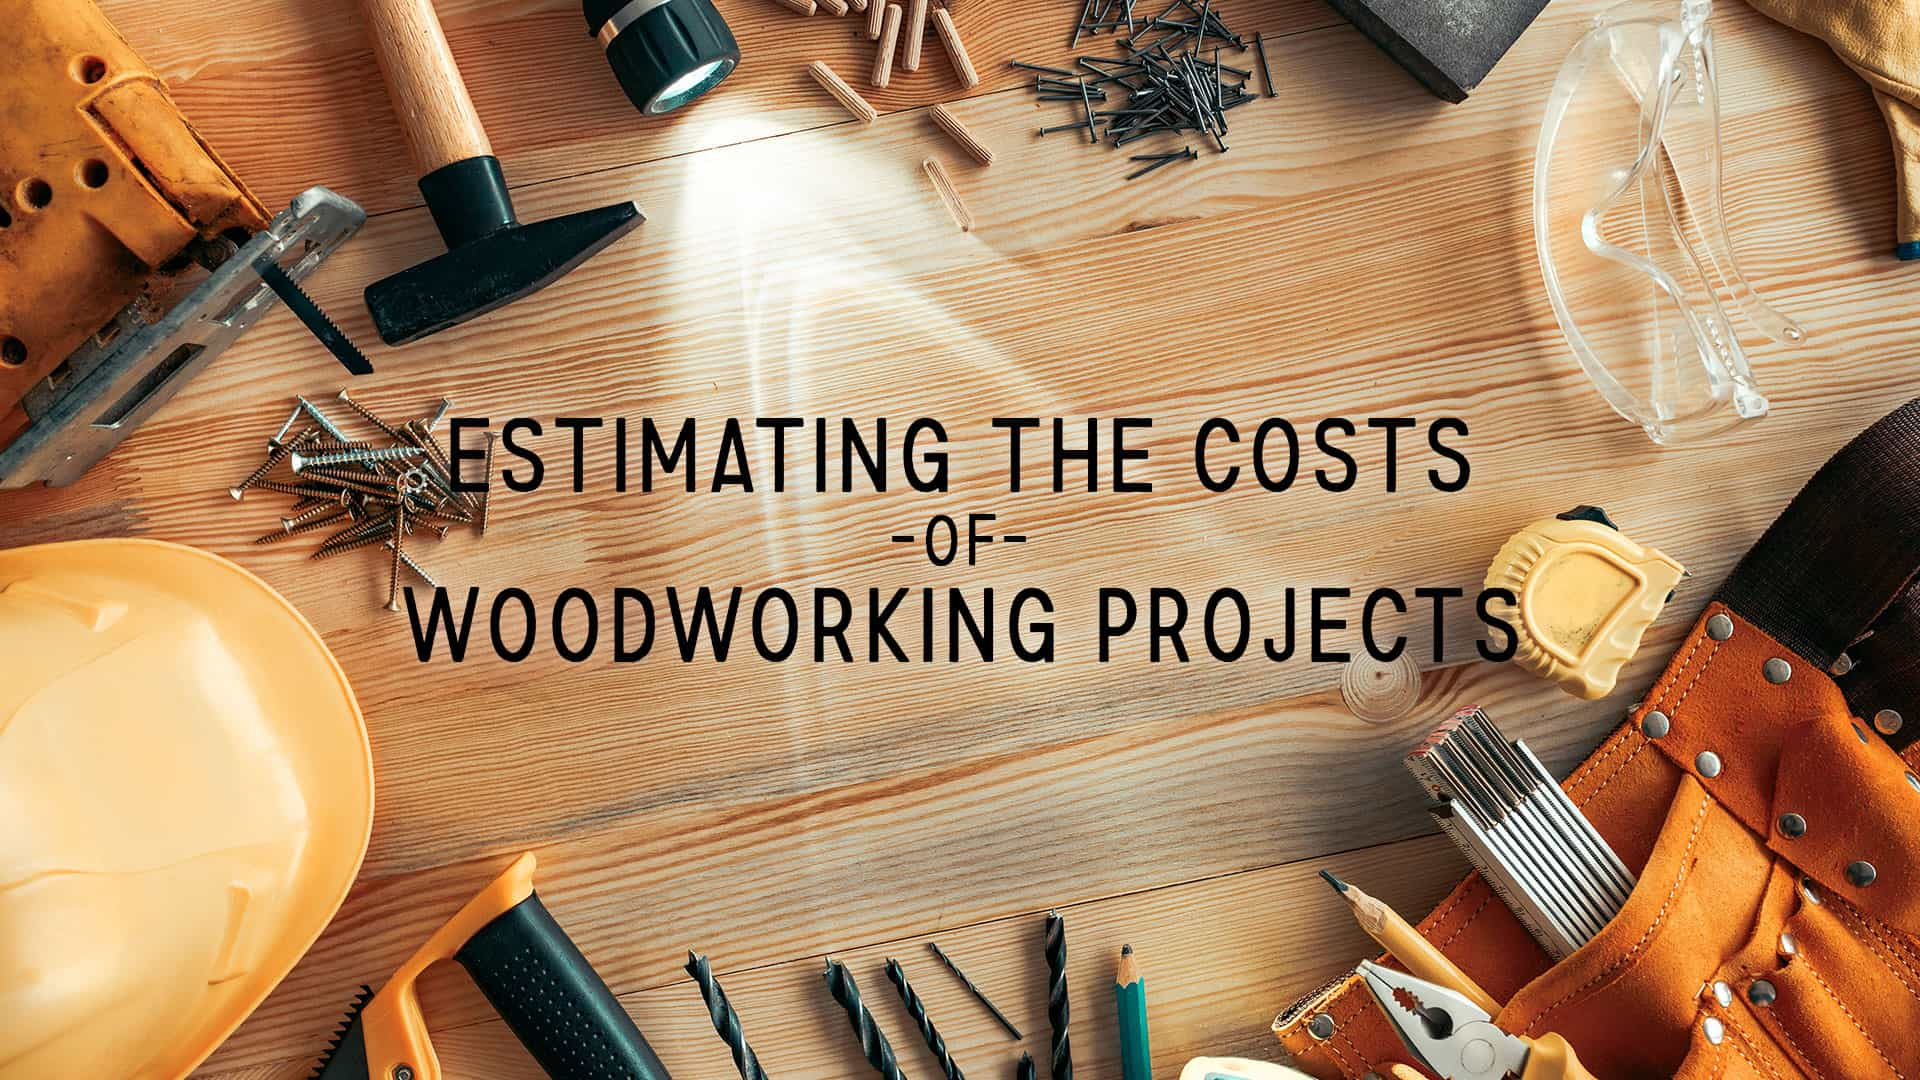 Estimating The Costs of Woodworking Projects